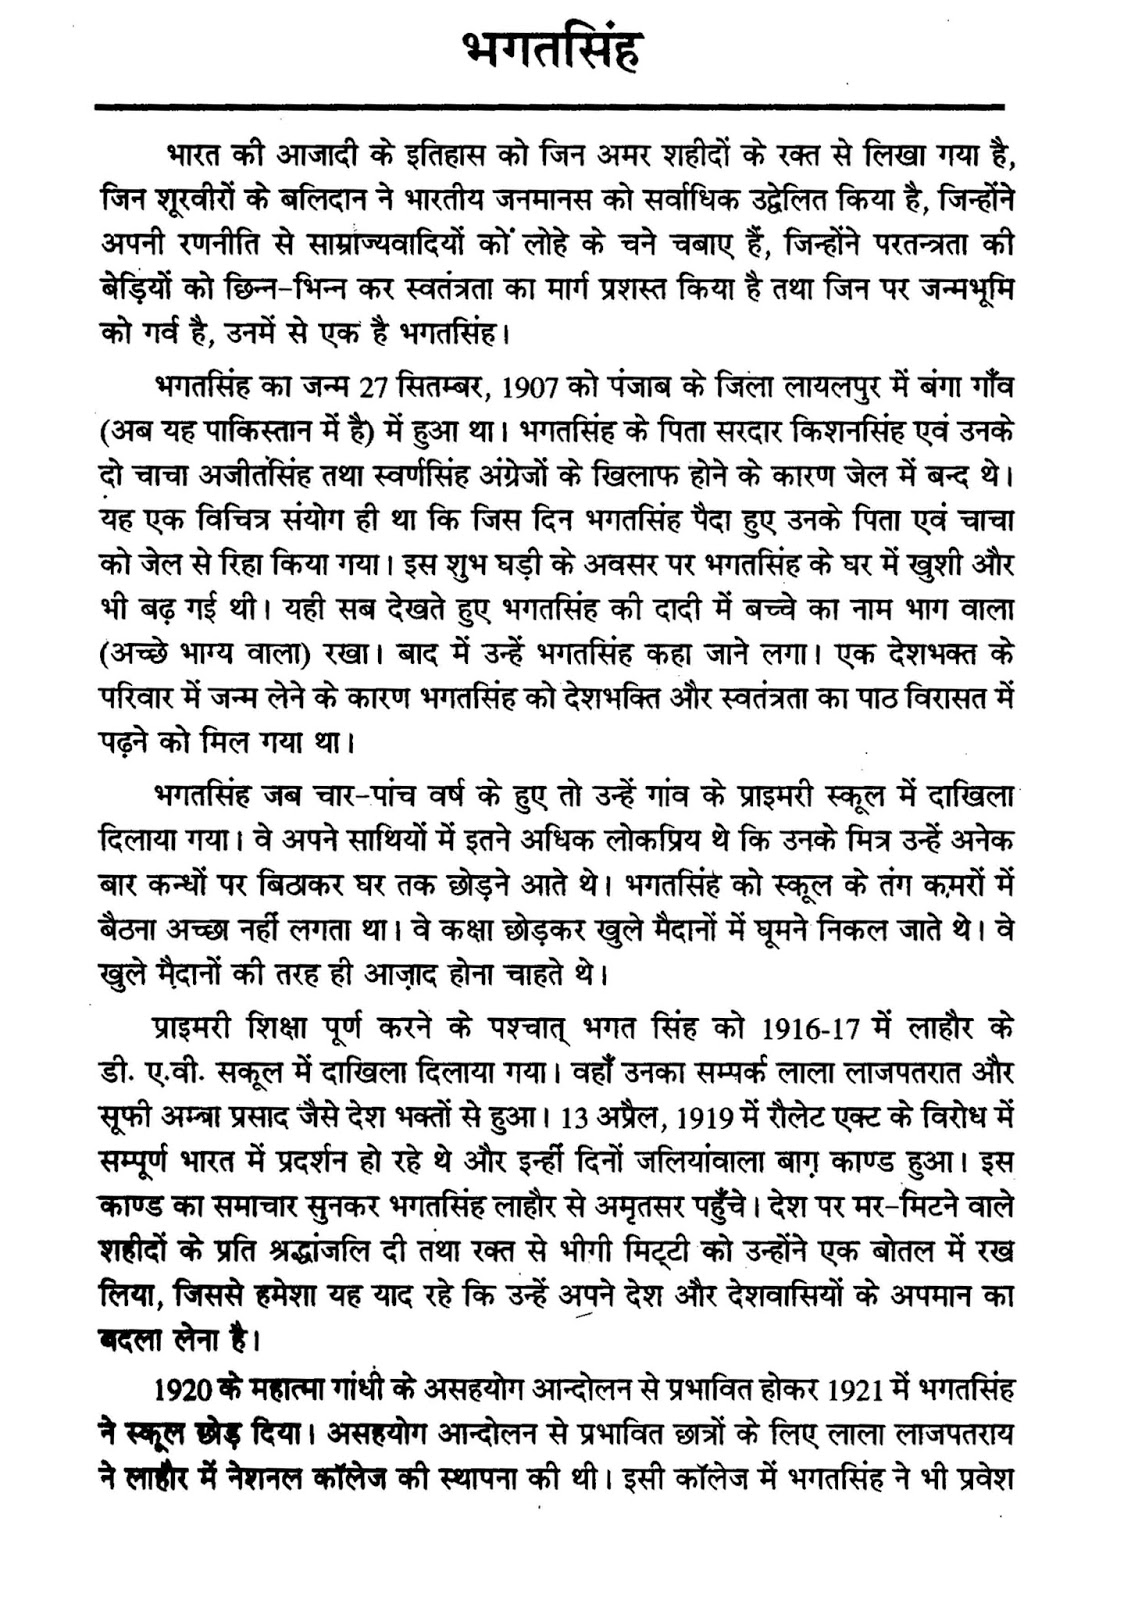 hindi essay on bhagat singh essay on bhagat singh in hindi shorts hindi essay bhagat singh hindi essaybhagat singh hindi essay agravecurrenagravecurren